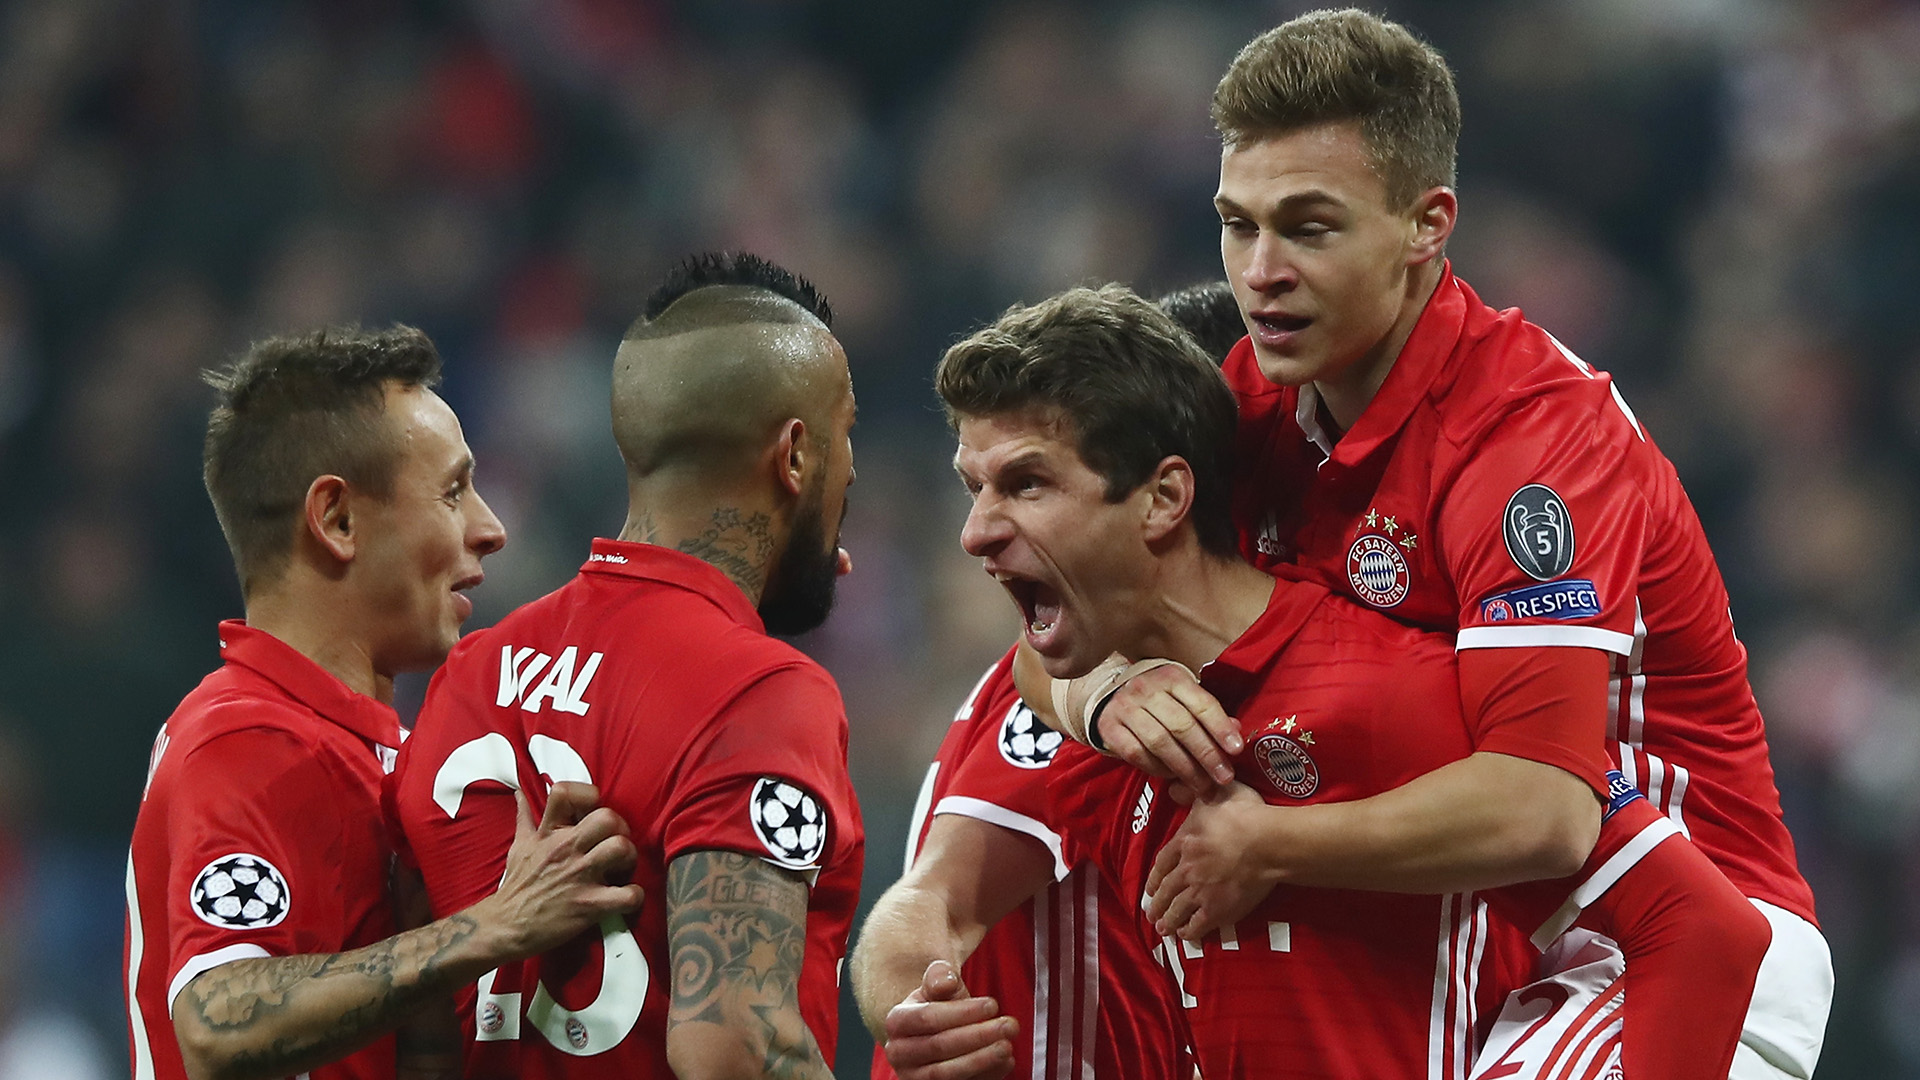 http://images.performgroup.com/di/library/GOAL/5e/5a/bayern-munich-vs-arsenal_174o4z13g0nc31k1tkpa1sqf25.jpg